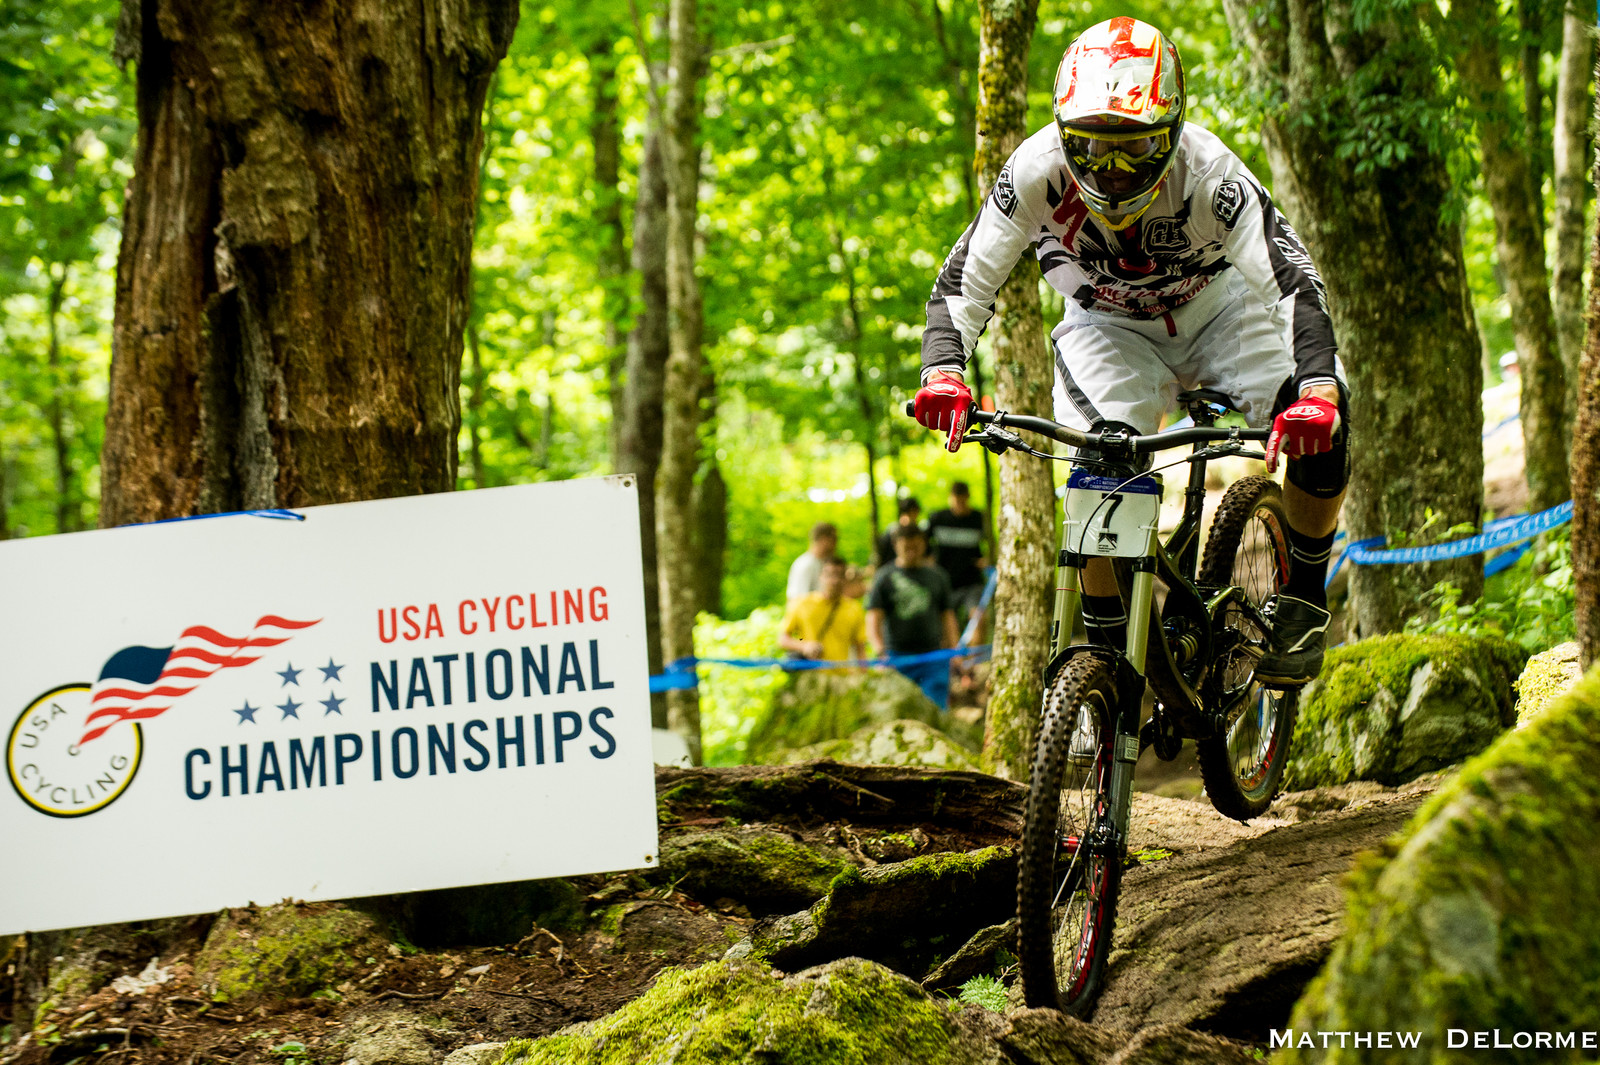 Curtis Keene at U.S. National Championships - U.S National Championship Dual Slalom Finals and DH Qualifying - Mountain Biking Pictures - Vital MTB